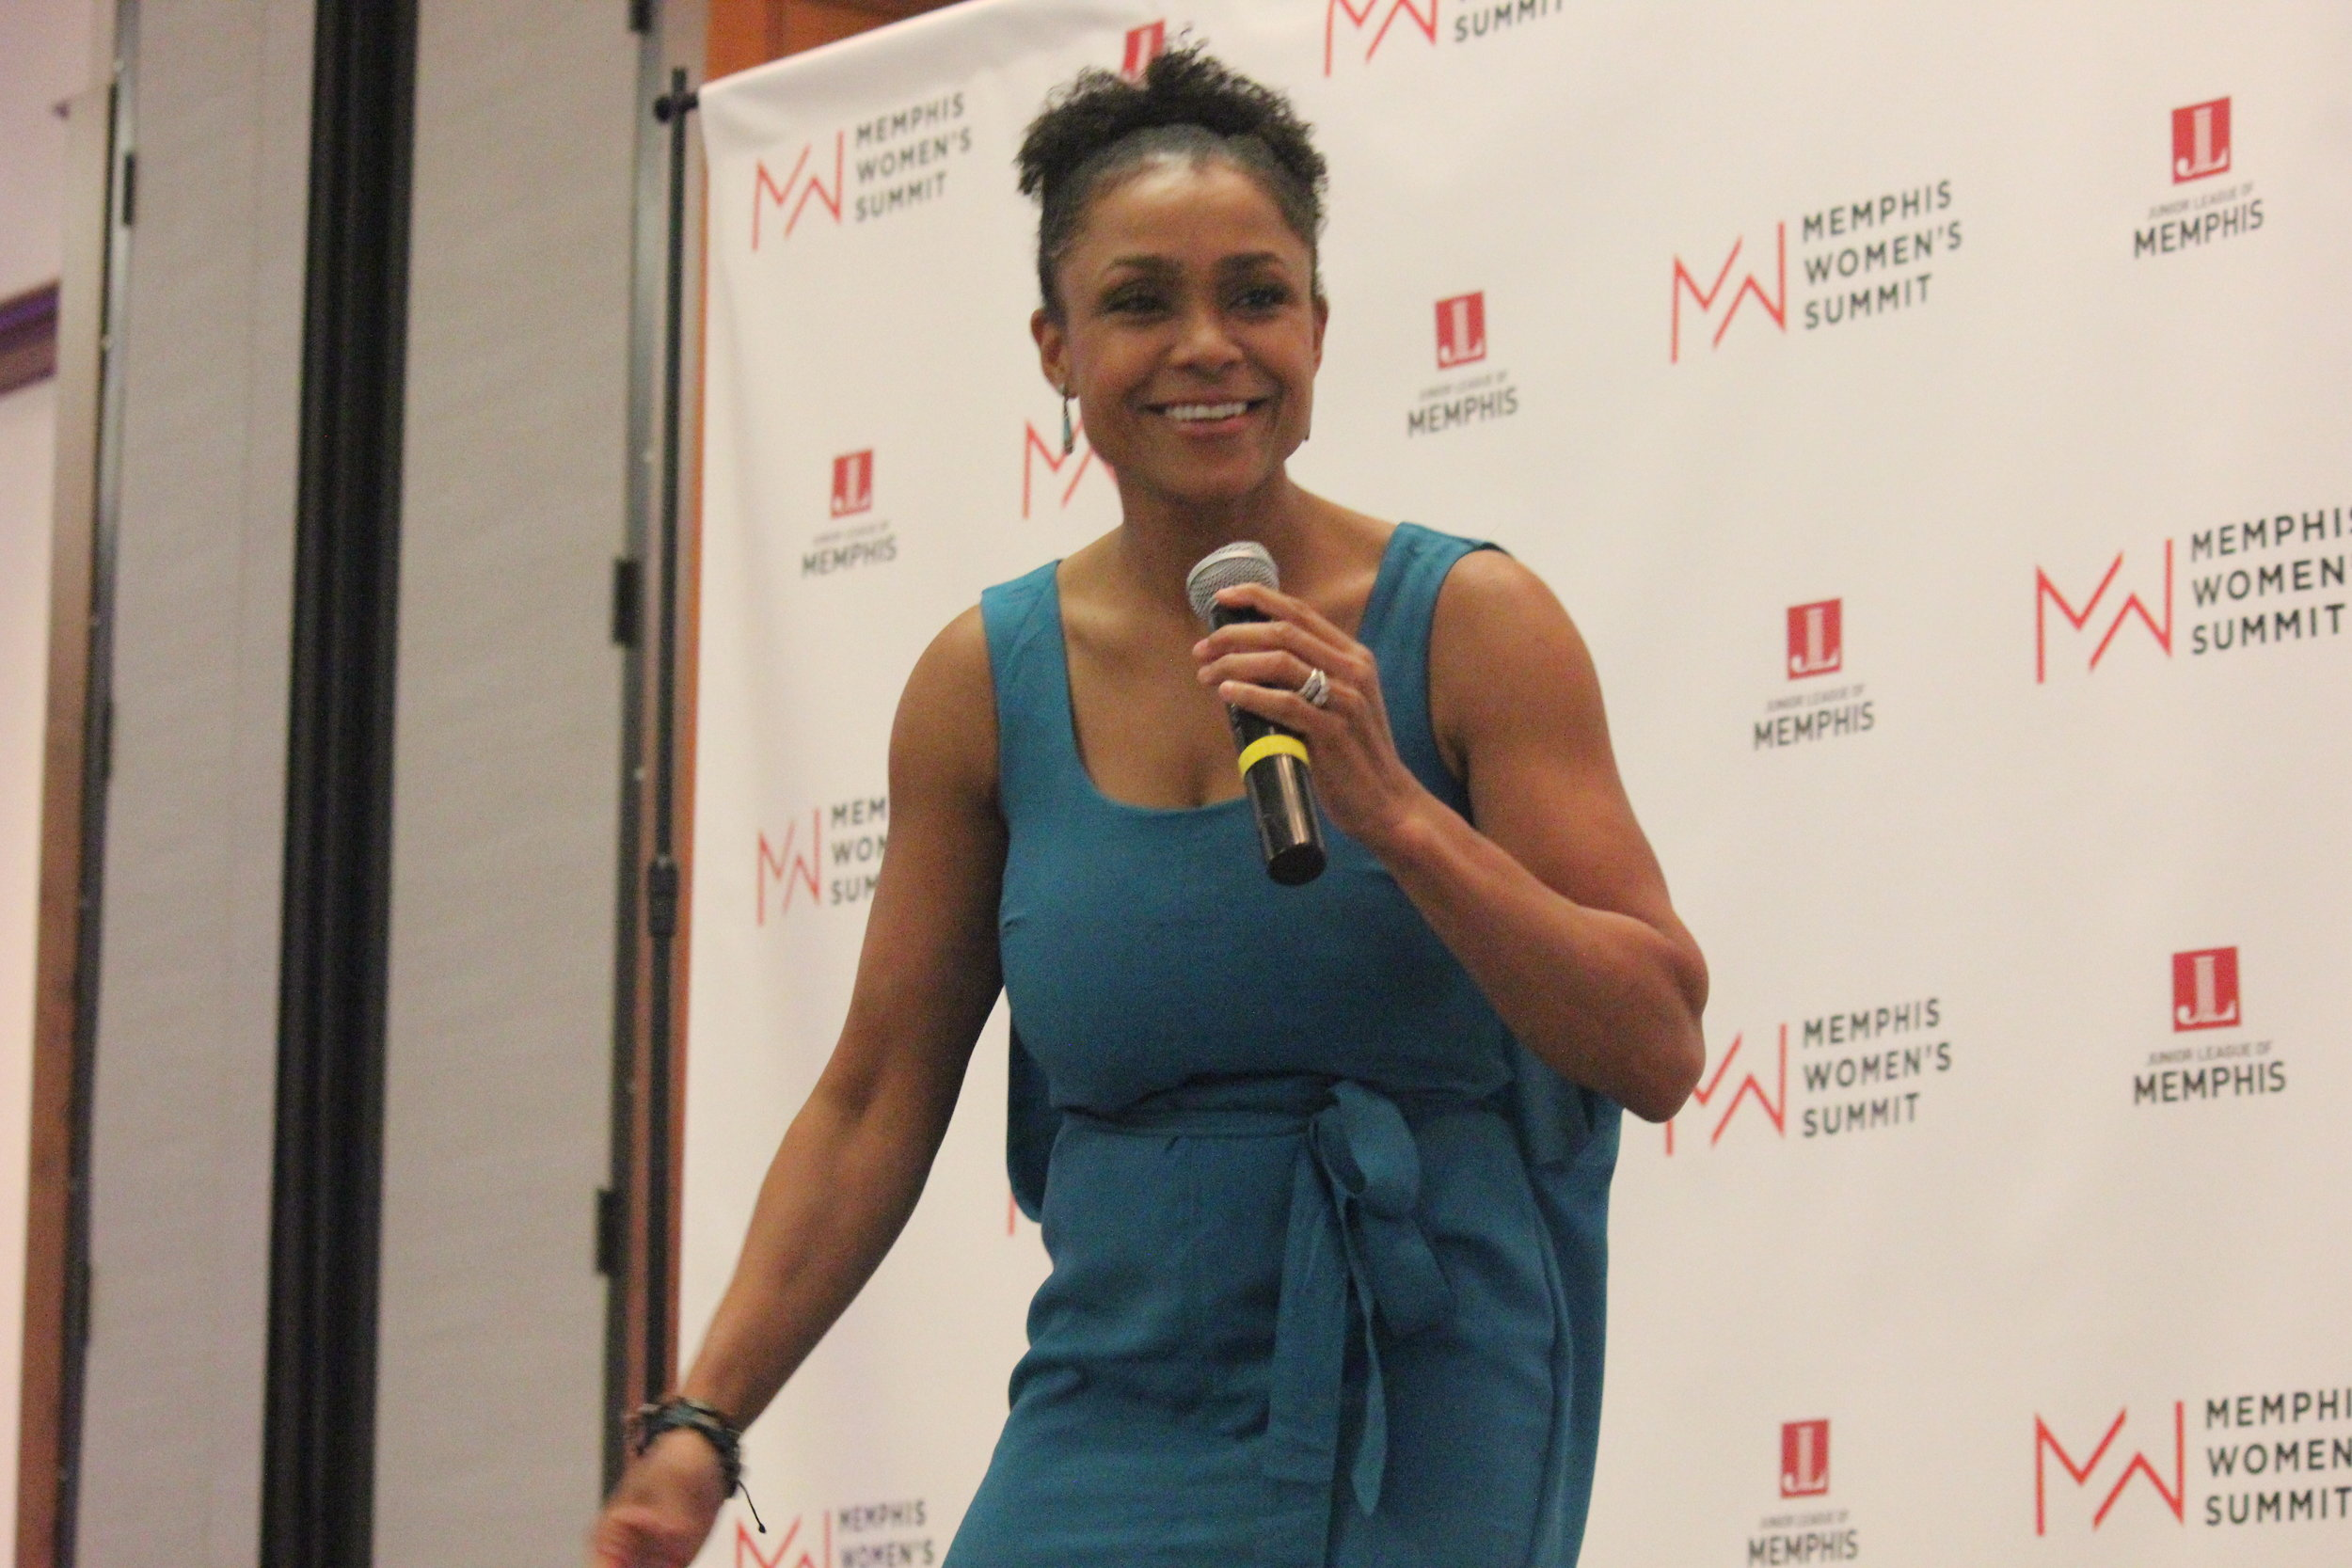 Dominique Dawes, 2019 Keynote Speaker